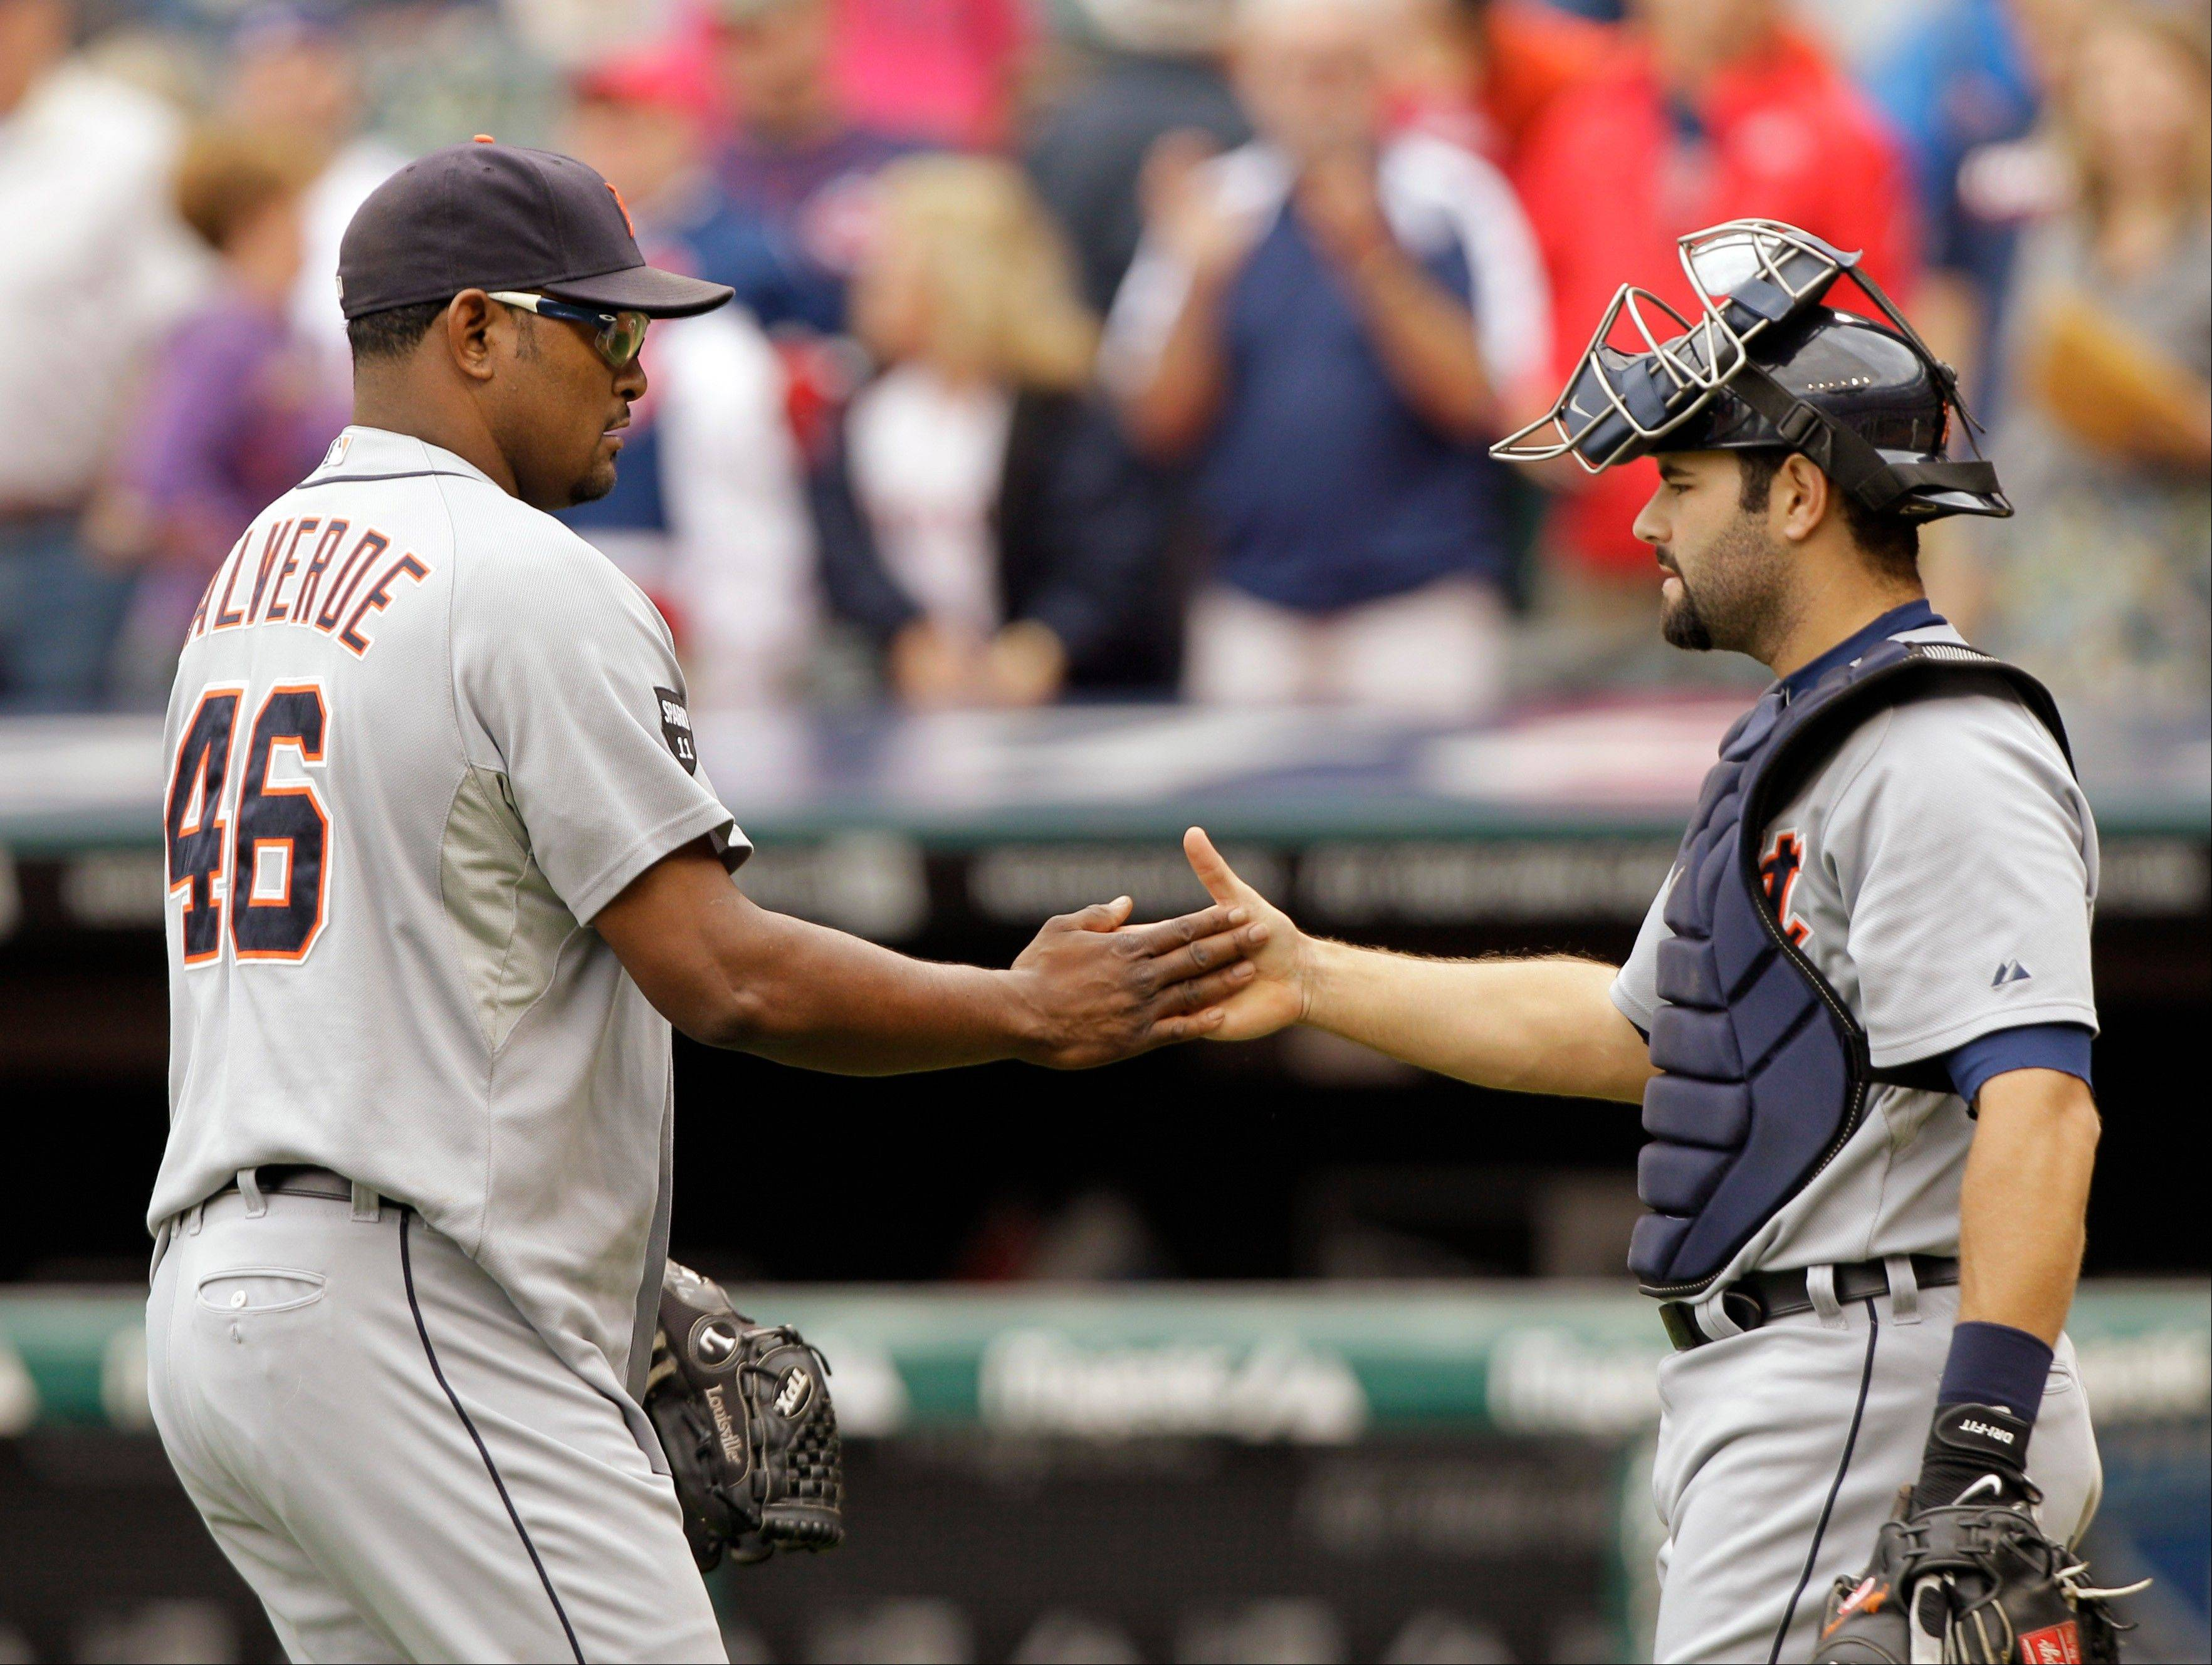 Detroit Tigers relief pitcher Jose Valverde (46) and catcher Alex Avila celebrate a 4-2 win over the Cleveland Indians in a baseball game Monday in Cleveland.